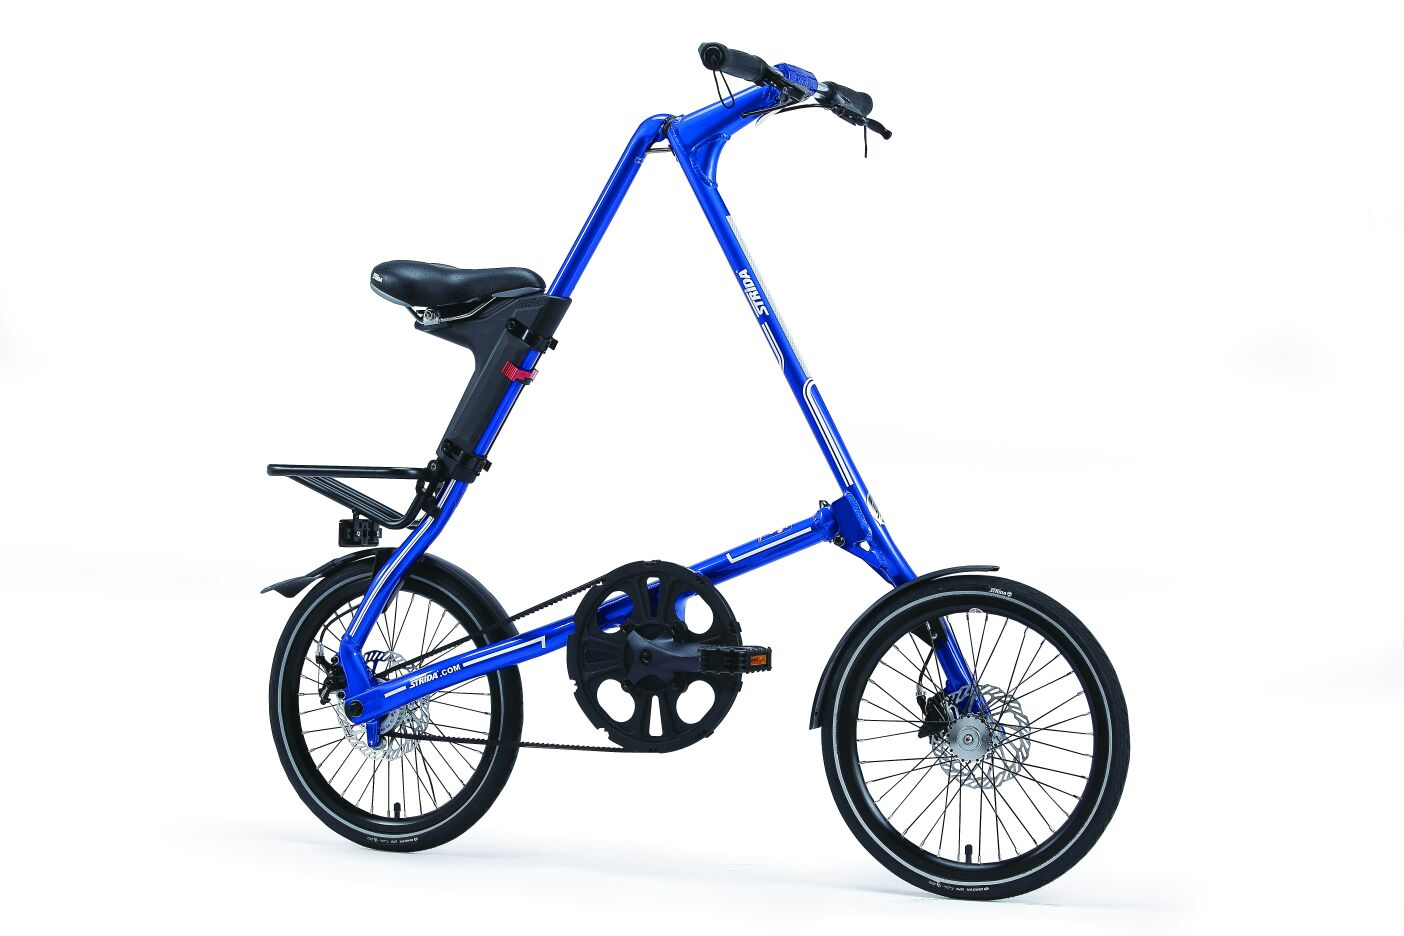 STRiDA SX Club Blue strida sx STRiDA SX 20160102014206